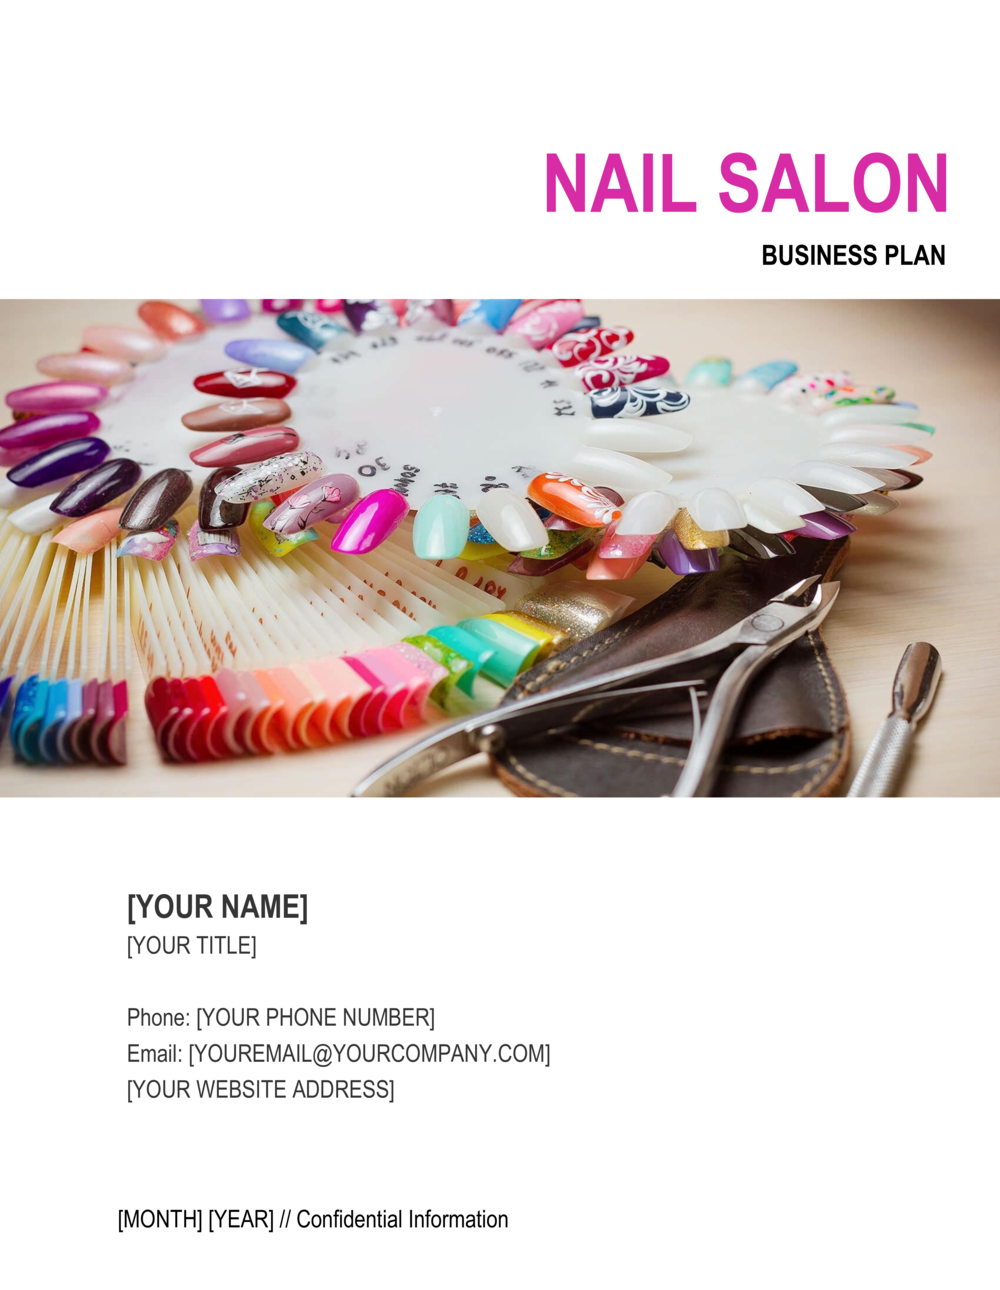 Business-in-a-Box's Nail Salon Business Plan Template